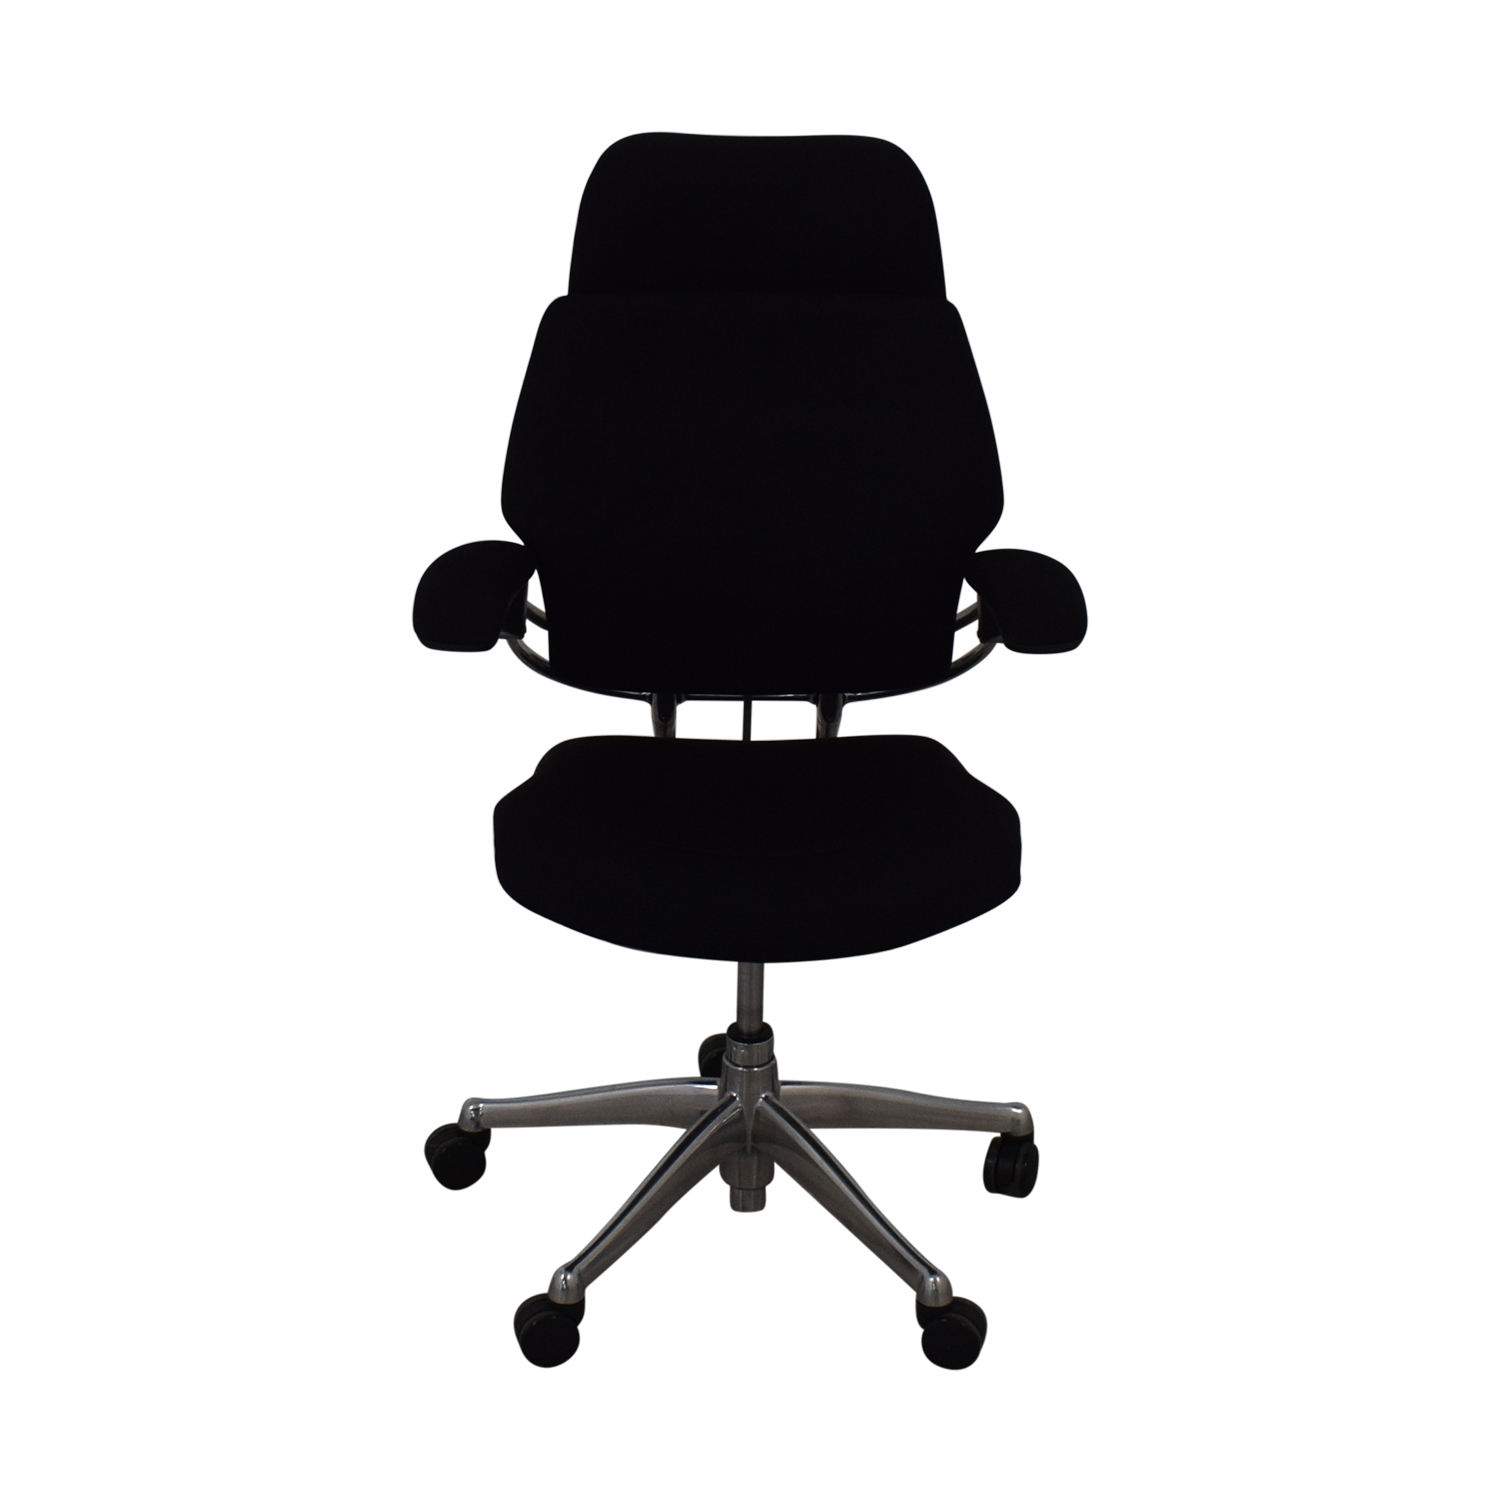 Humanscale Humanscale Desk Chair discount